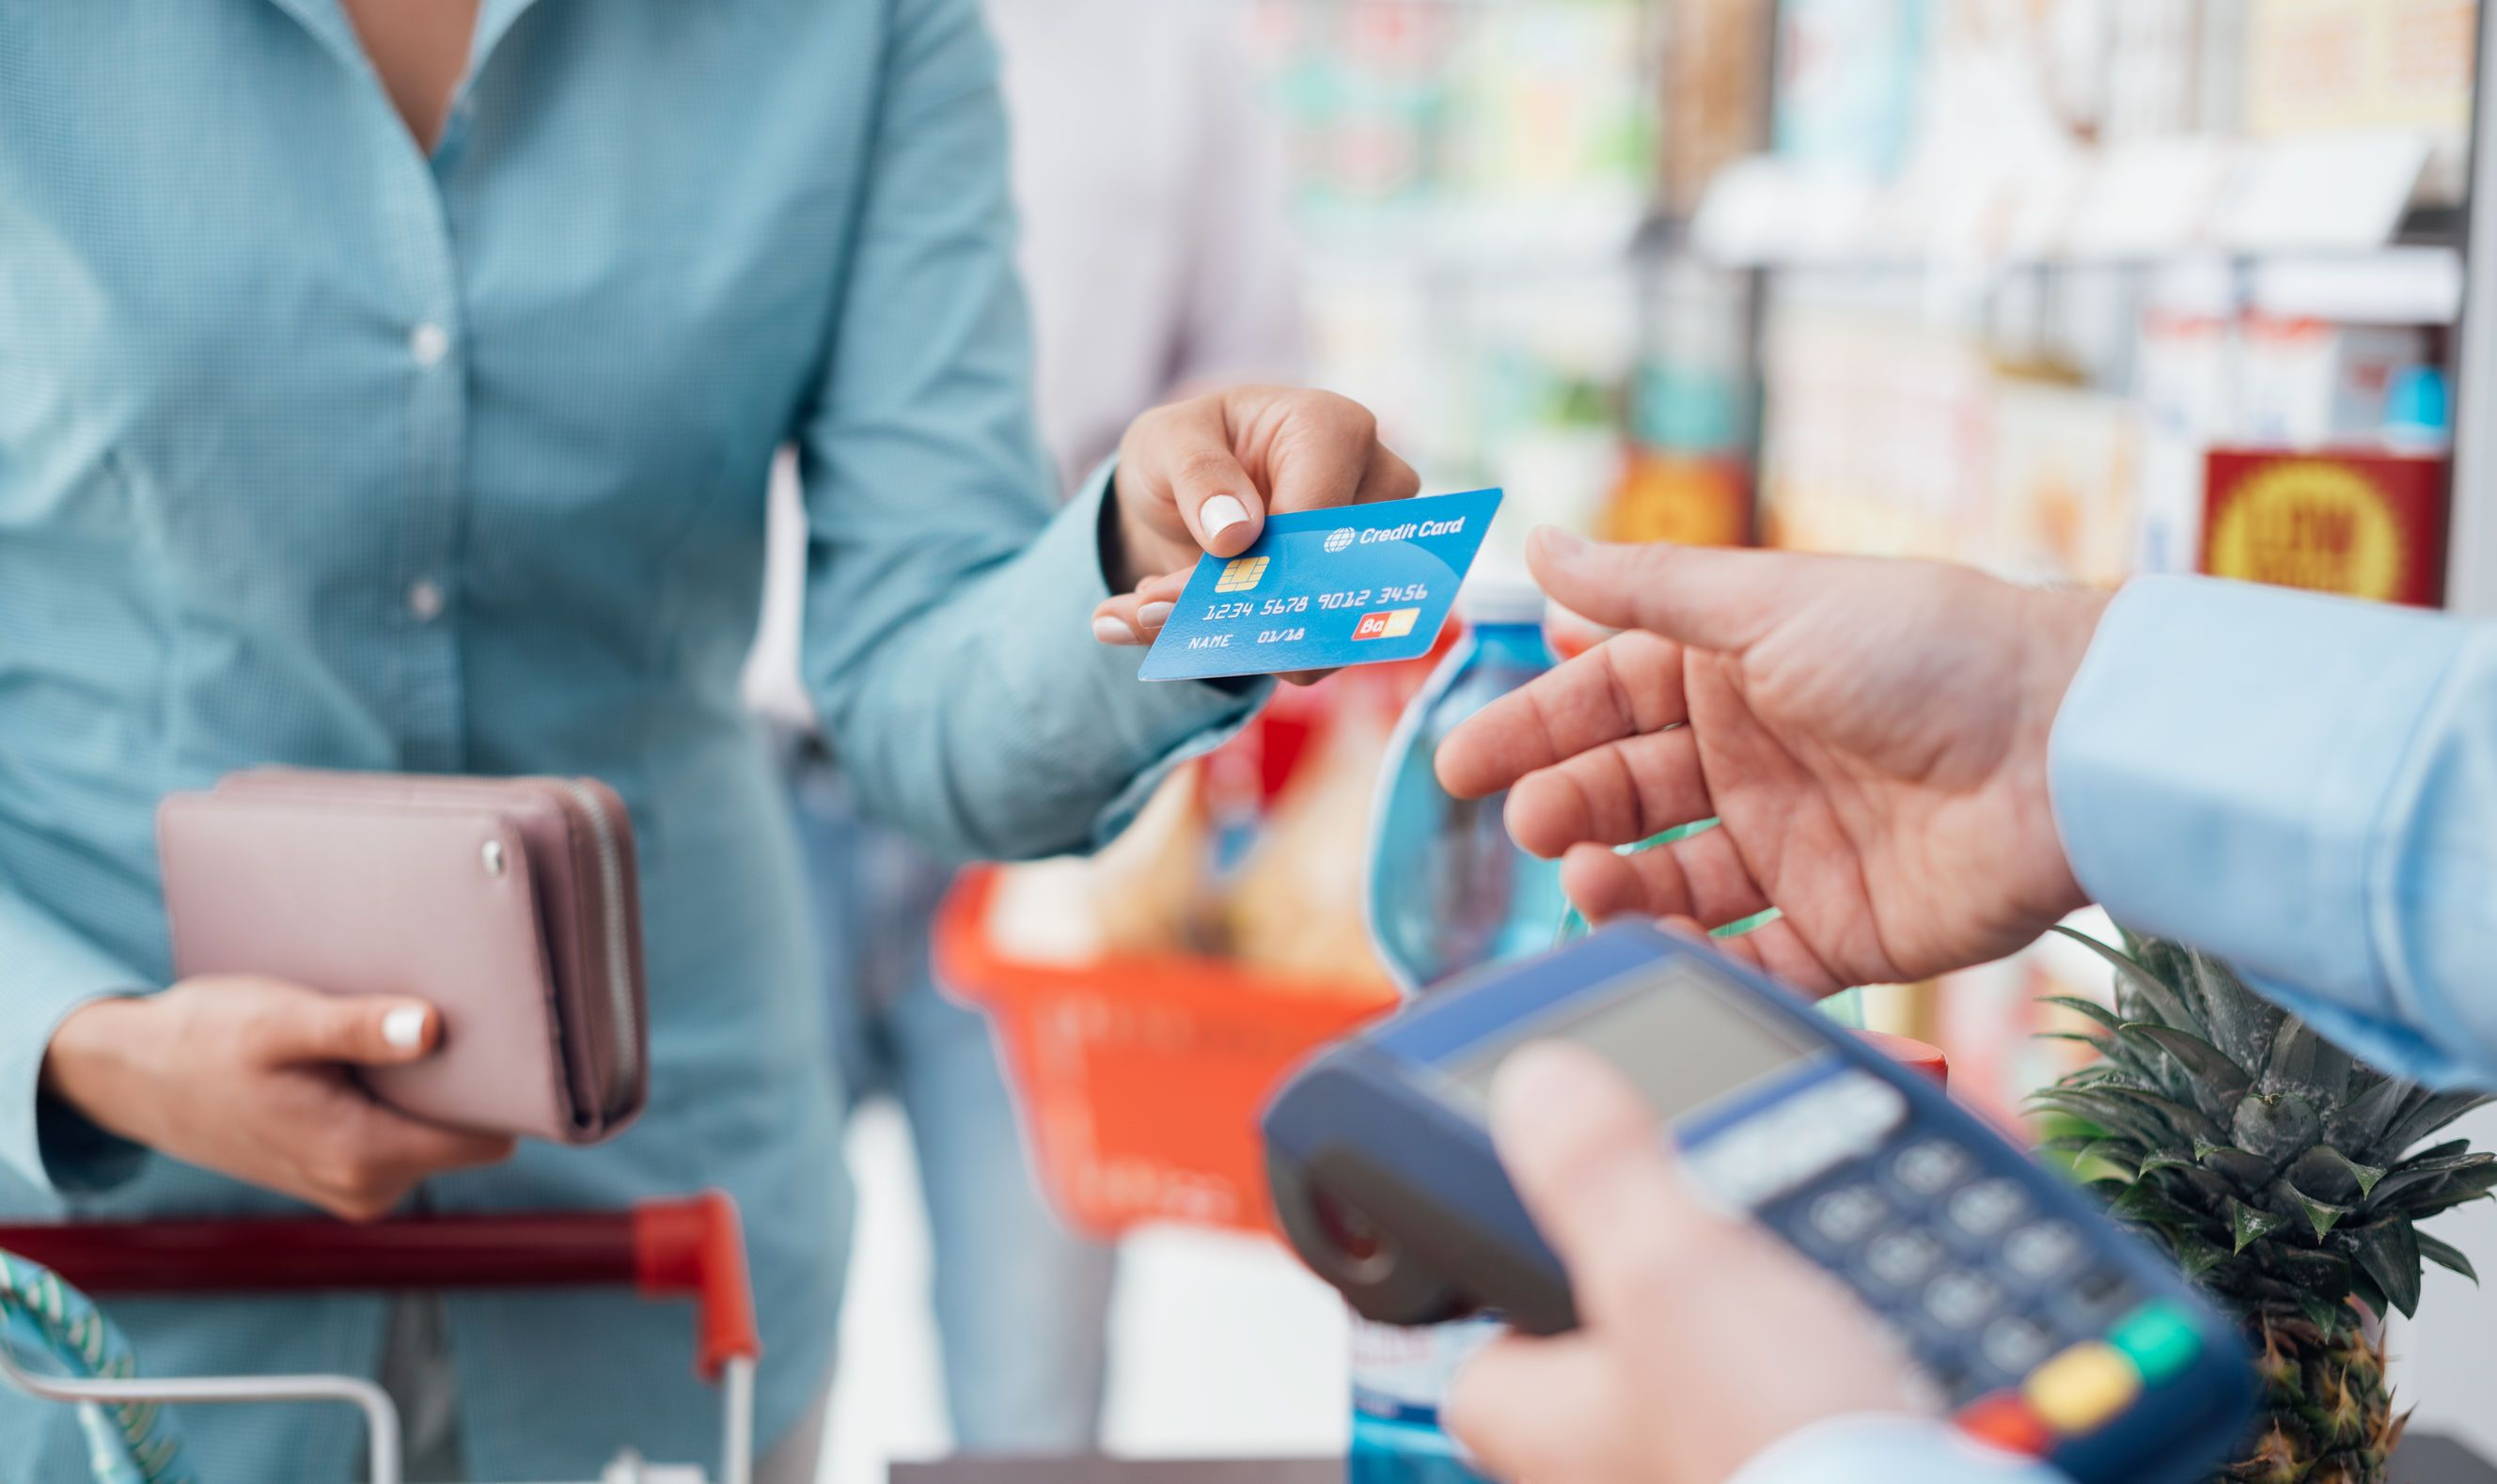 Credit cards are extremely handy because they allow you to